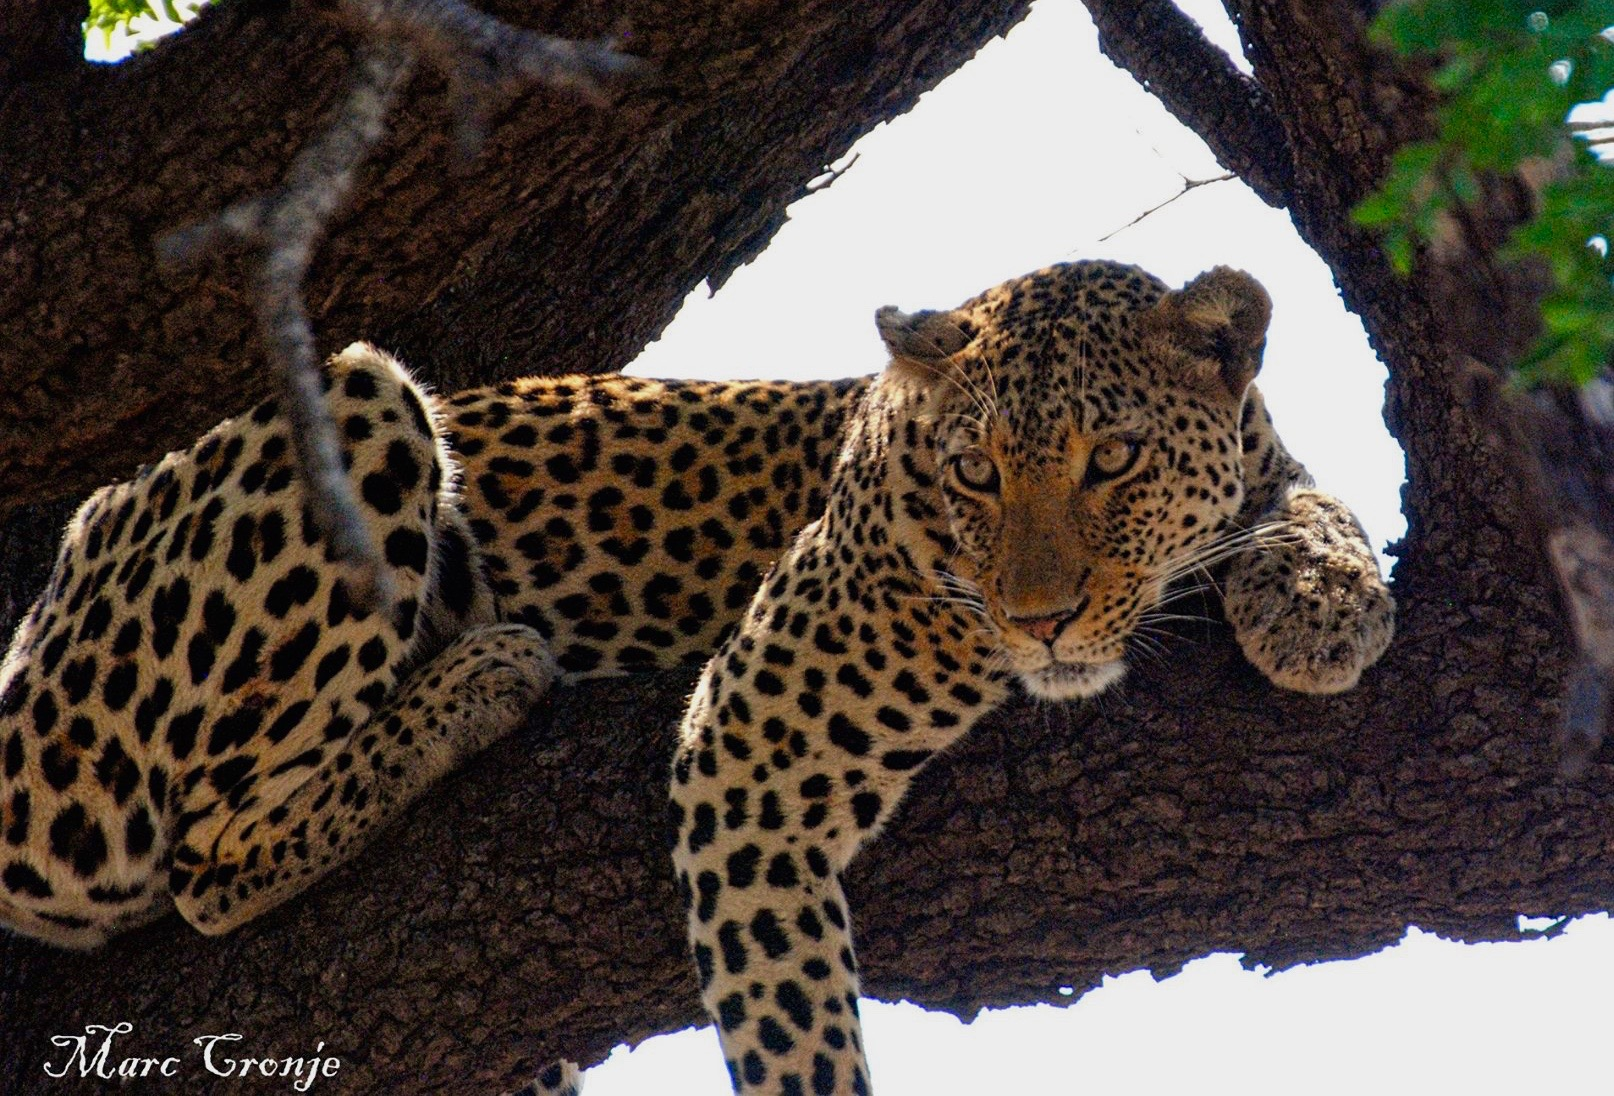 Kruger National Park has one of the largest populations of leopard anywhere in the world, like this one, watching Marc's guests watch it. Image: ©Marc Cronje, Independent Field Guide, Kruger NAtional Park